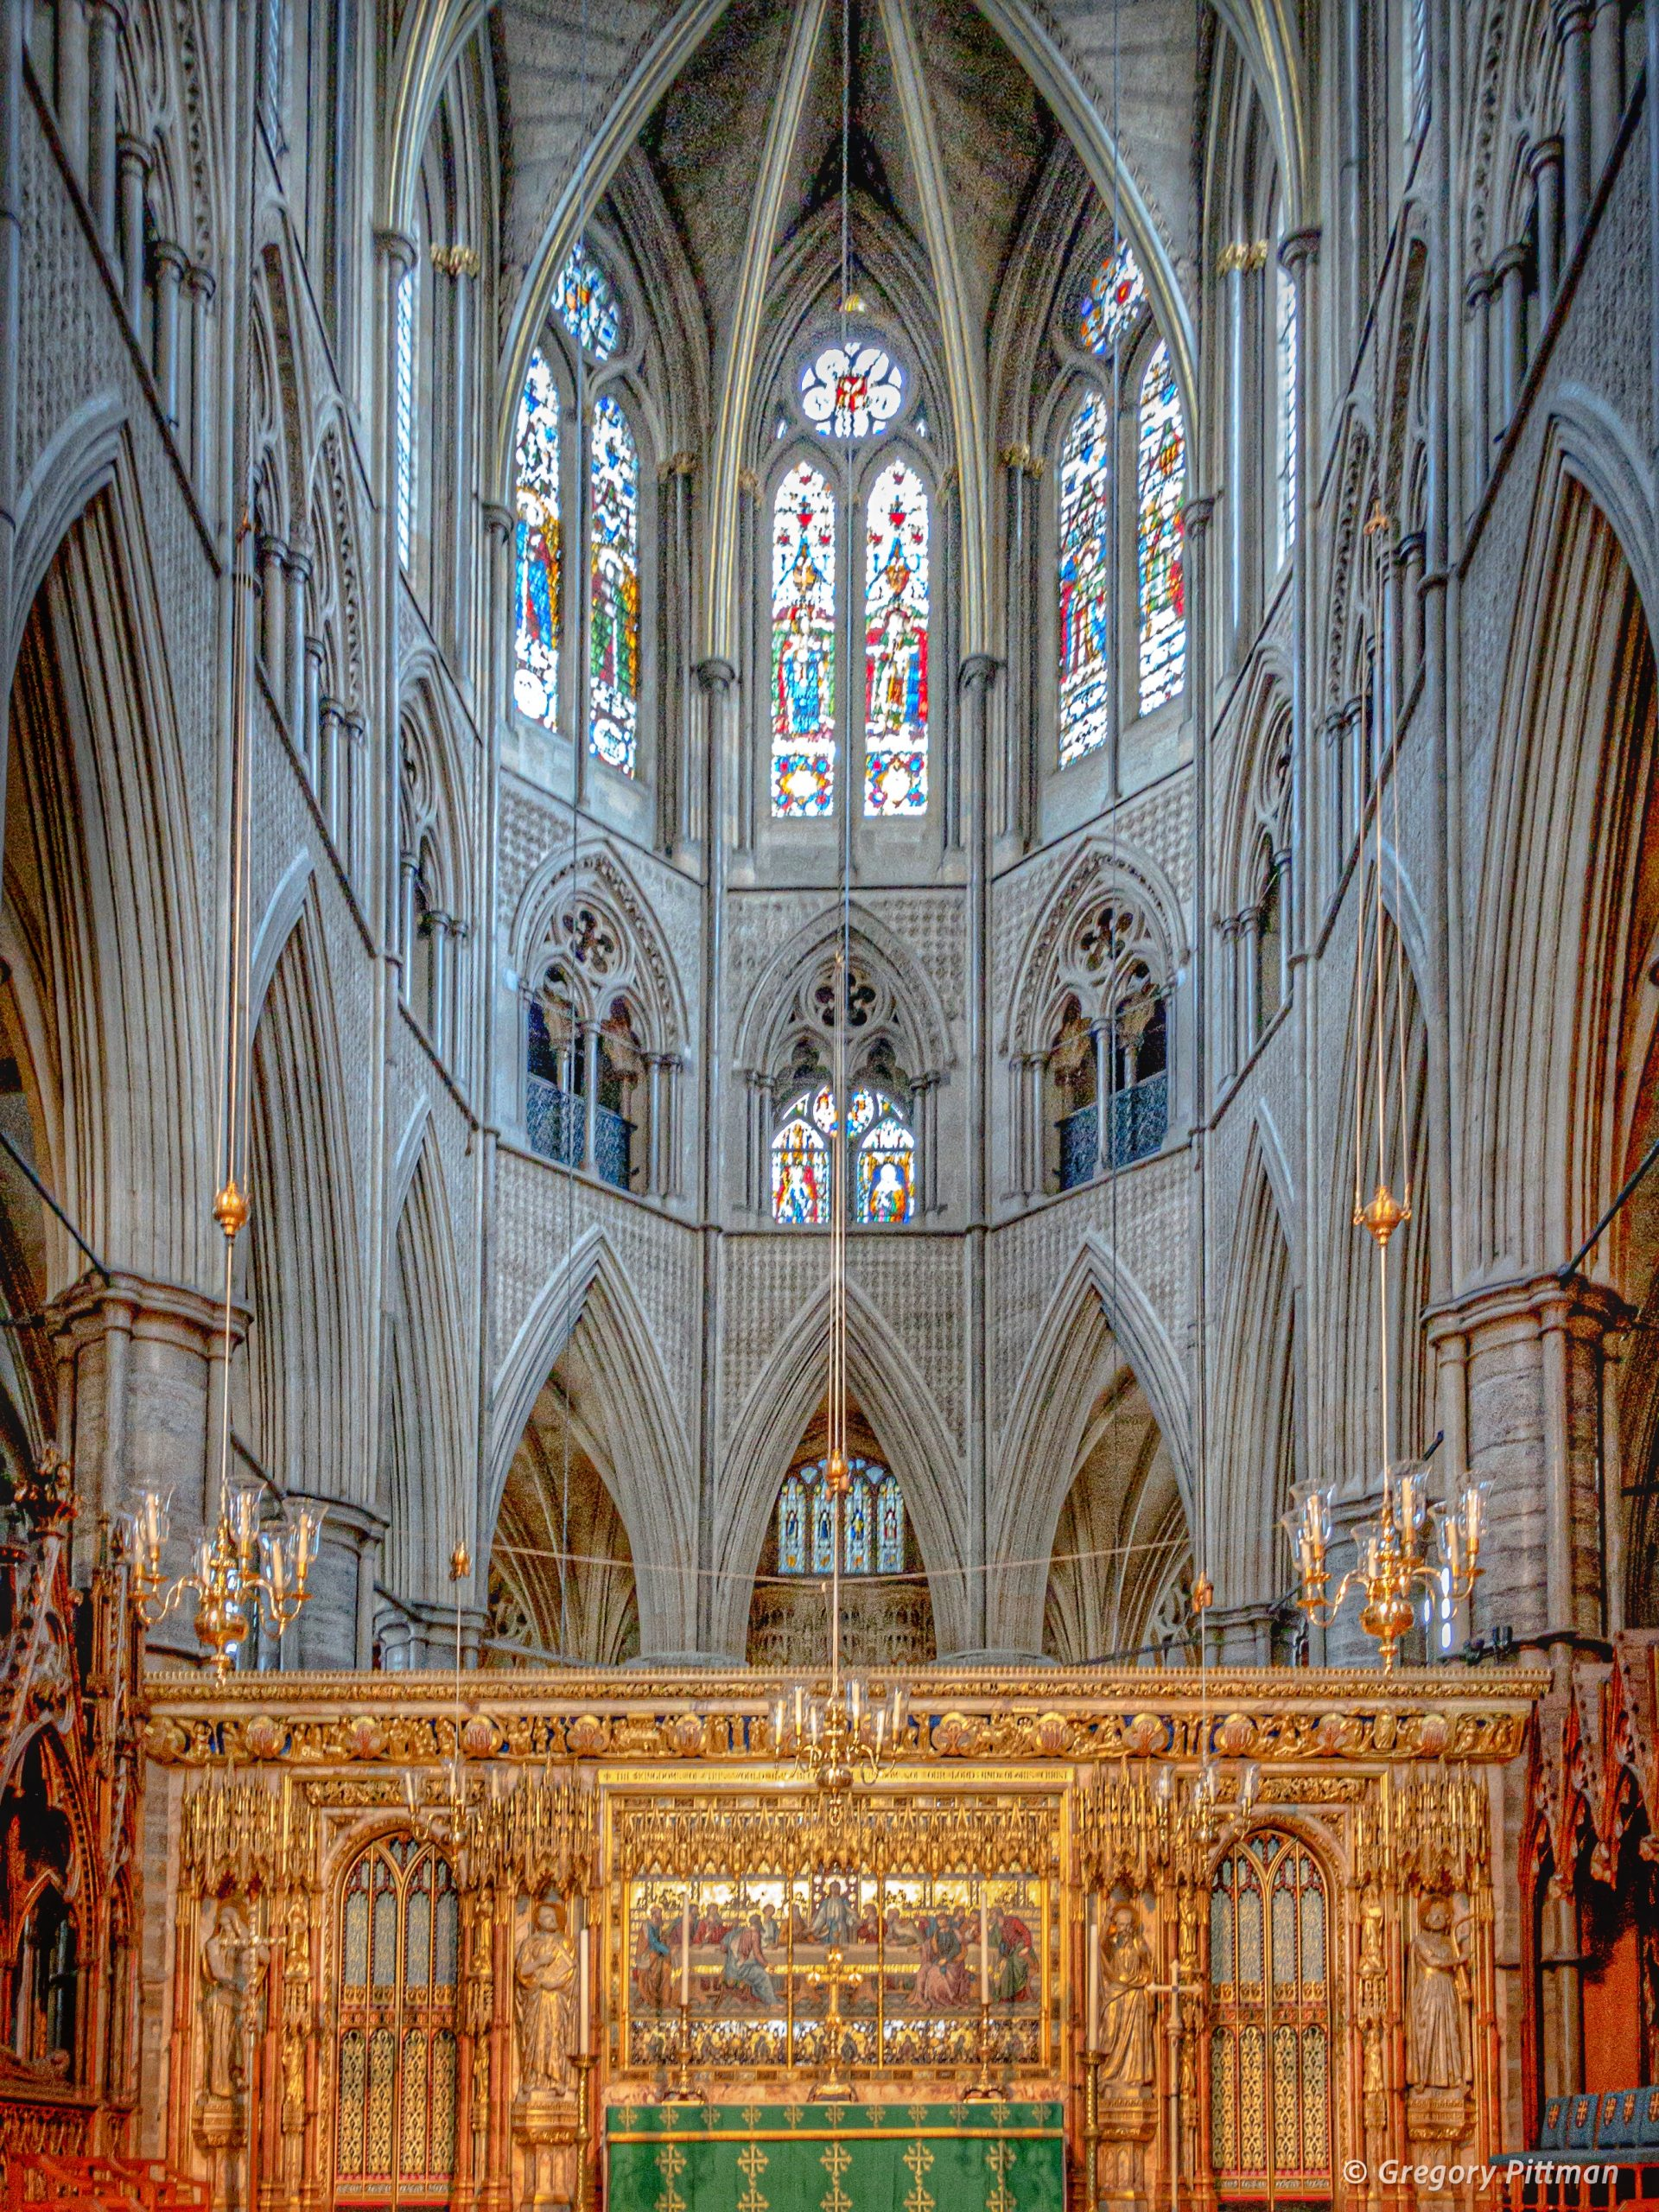 The High Altar, Westminster Abbey, London, England